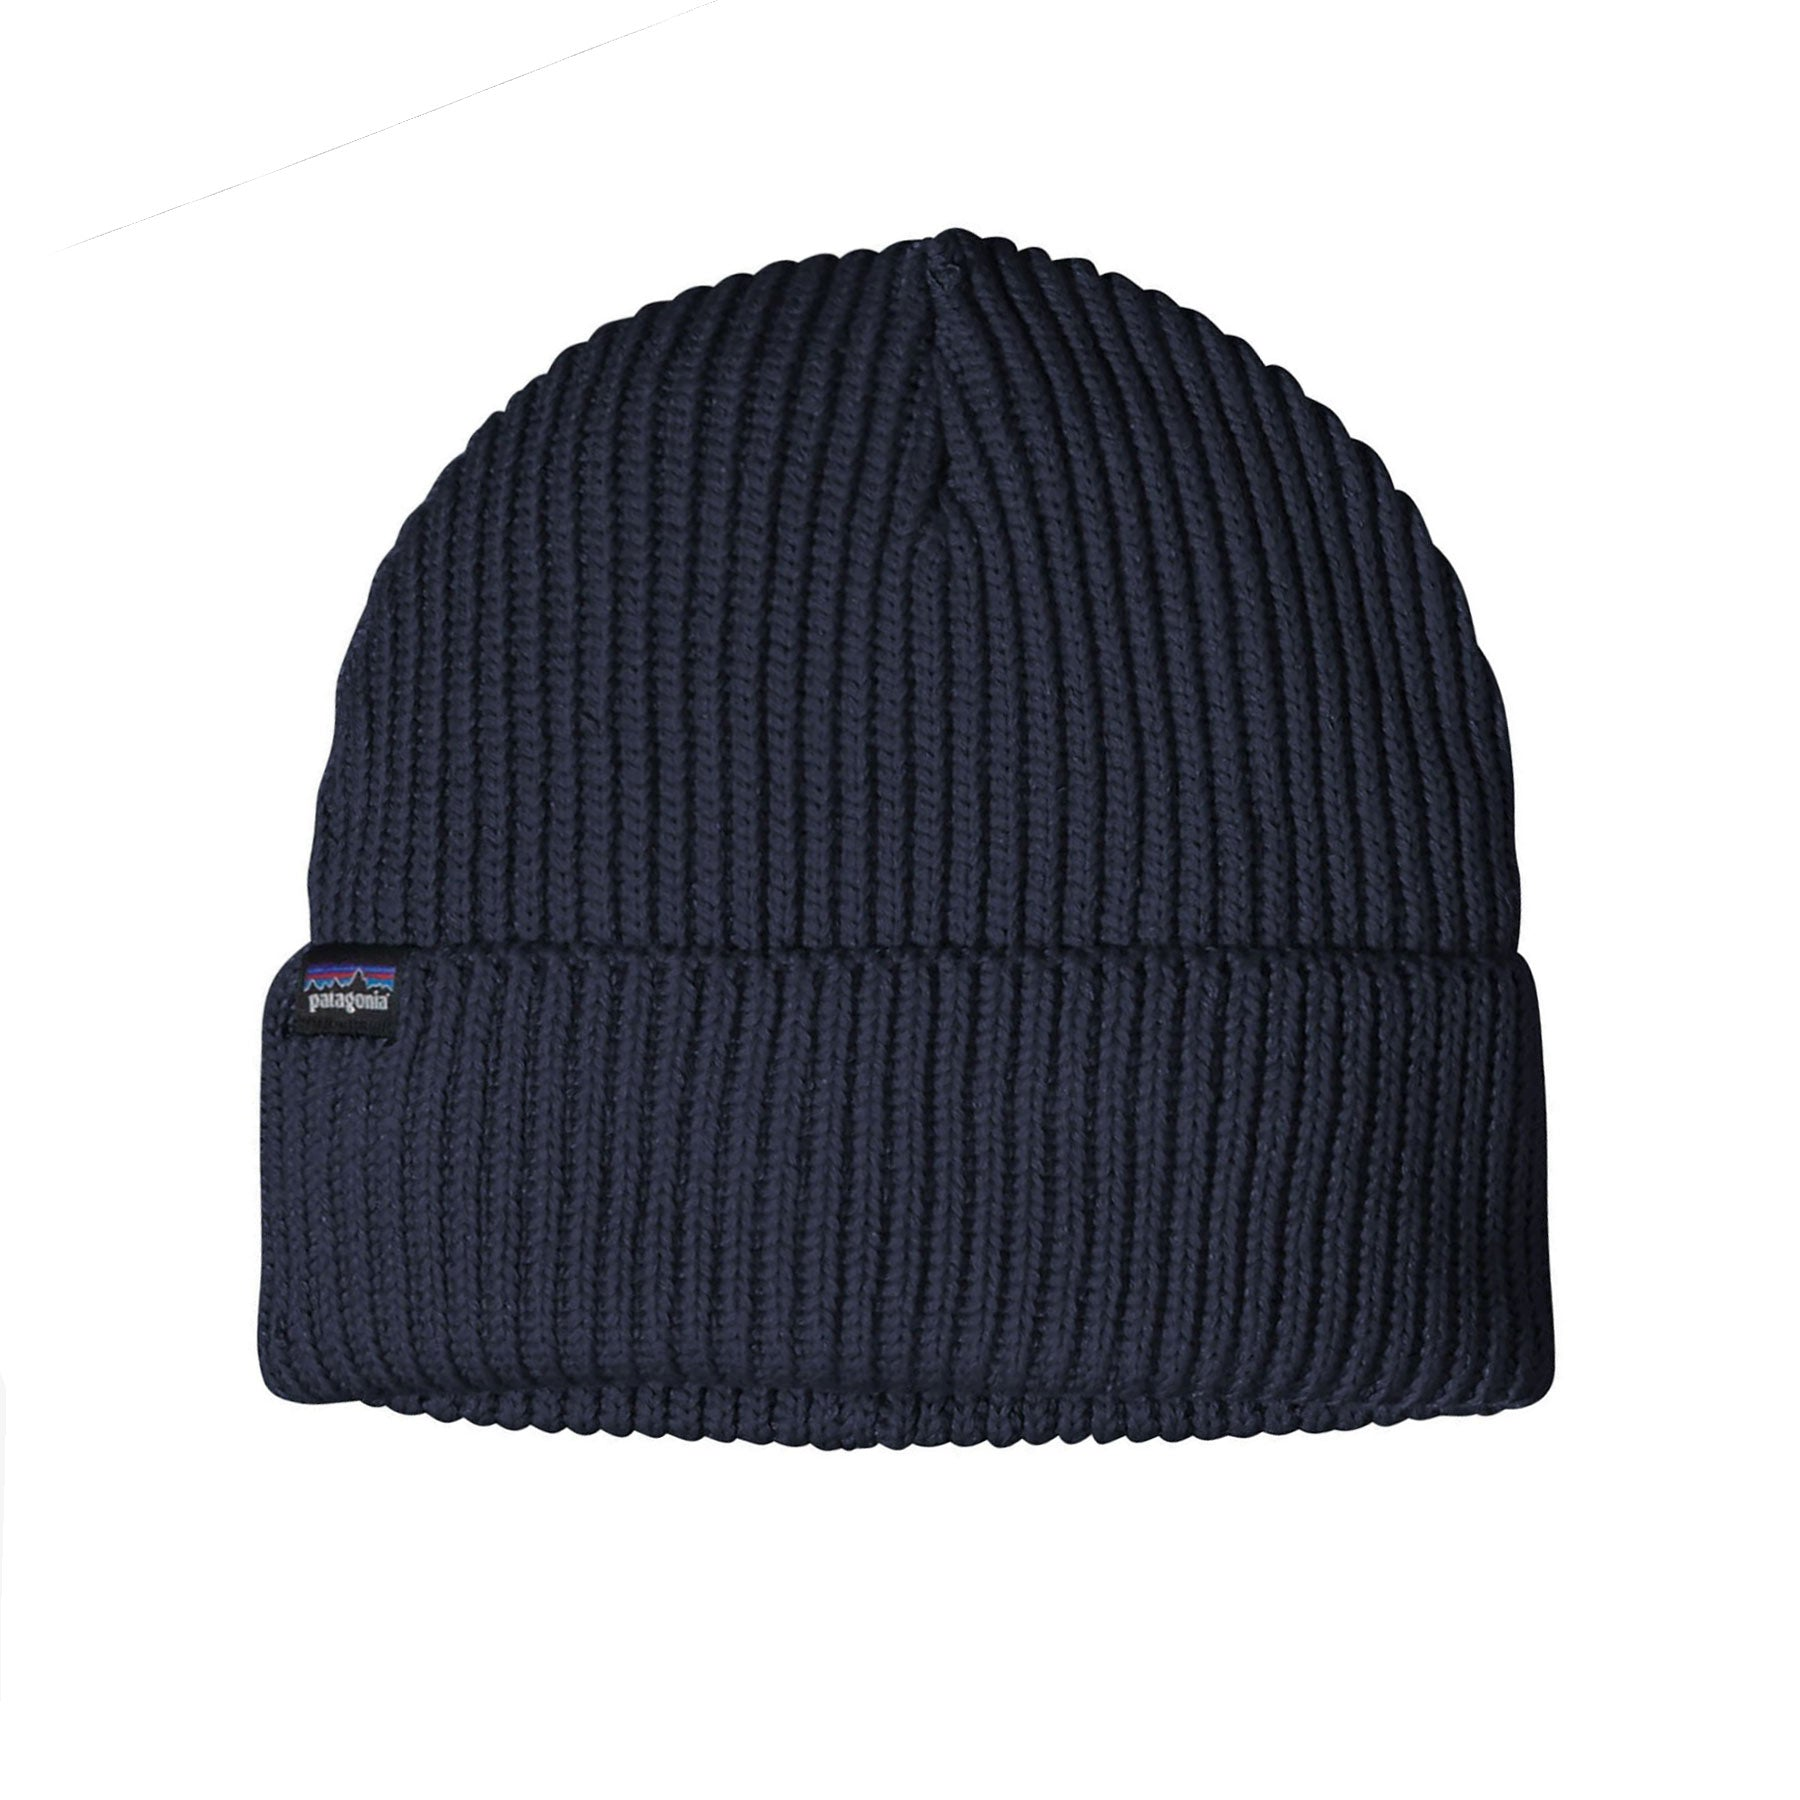 Patagonia Fishermans Rolled Beanie Product Photo #2